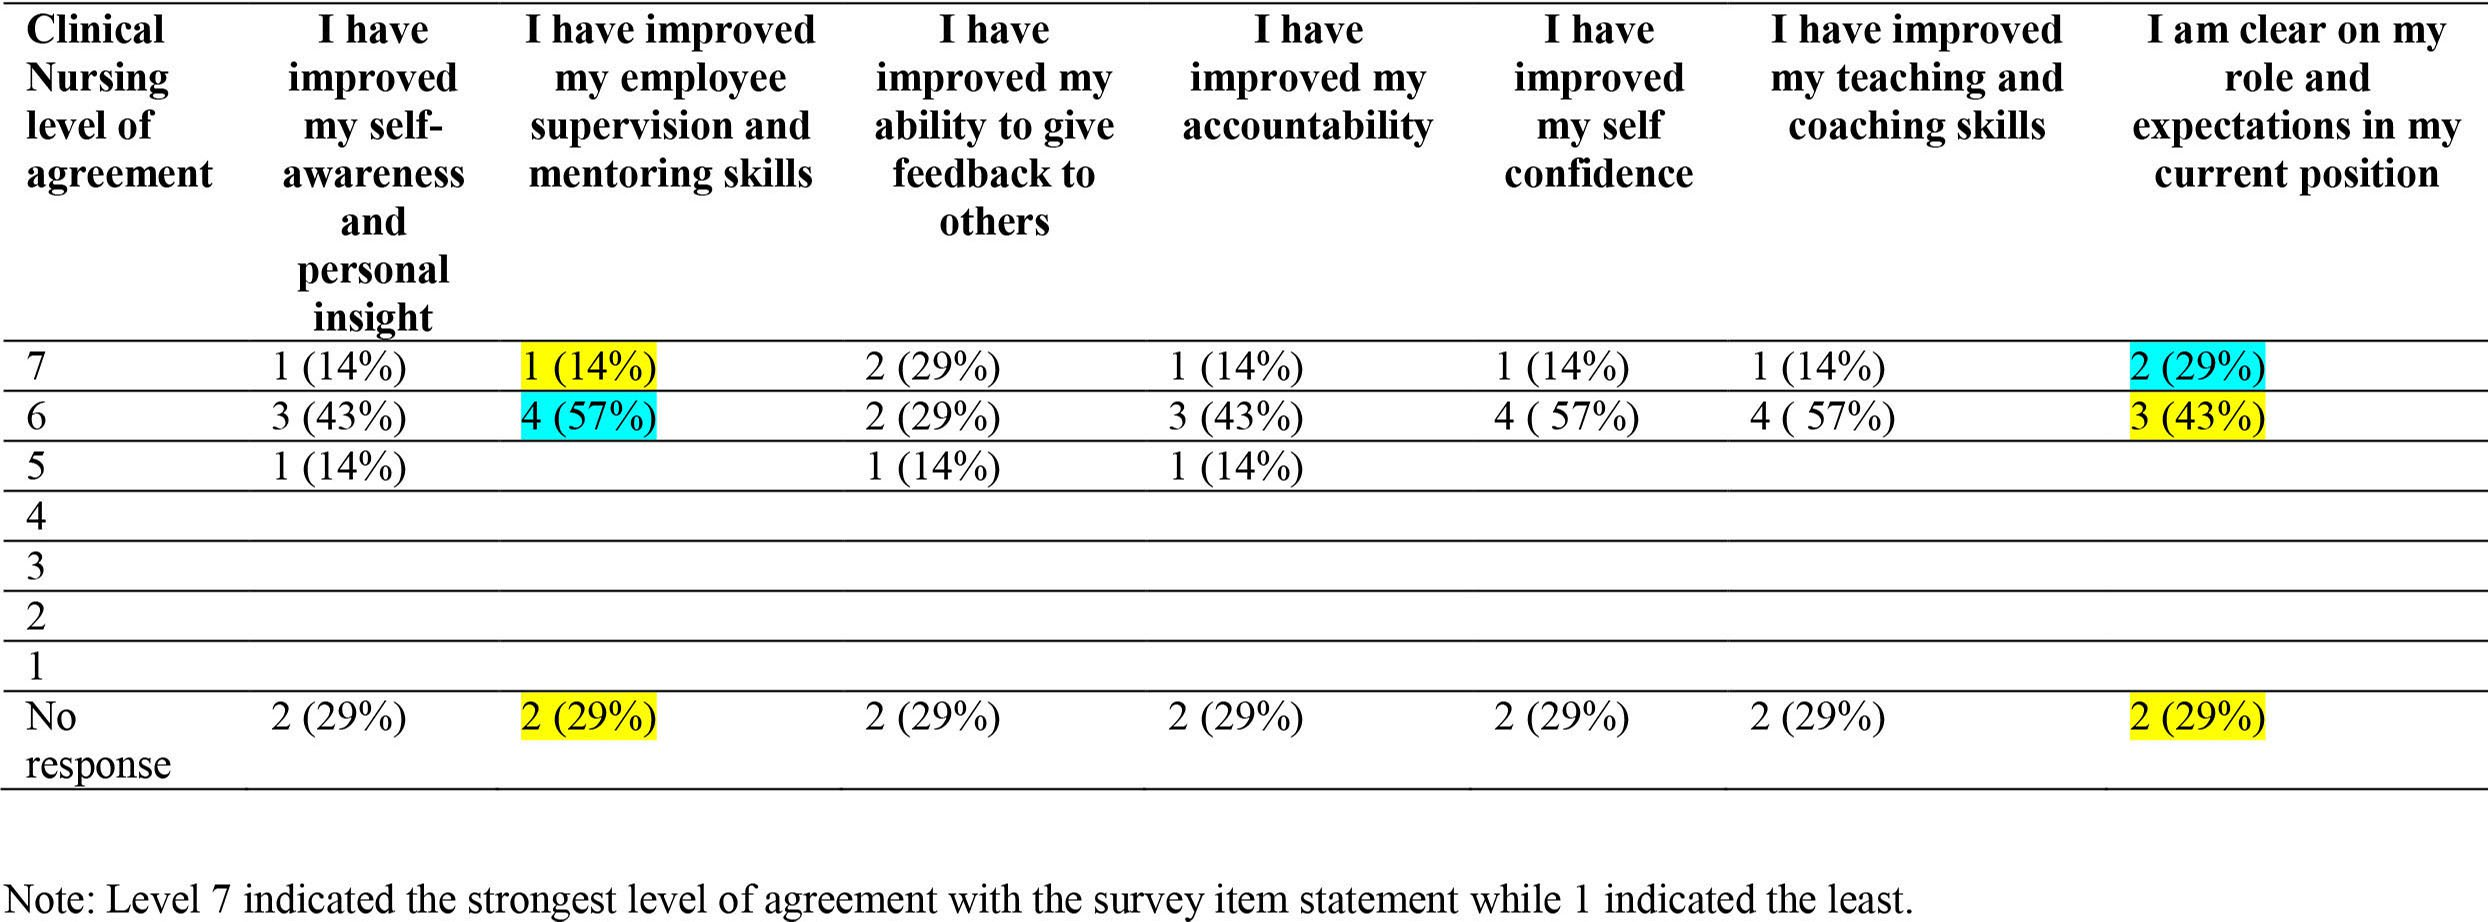 Nursing self-assessment survey 3 months following the education intervention n=7 (%)